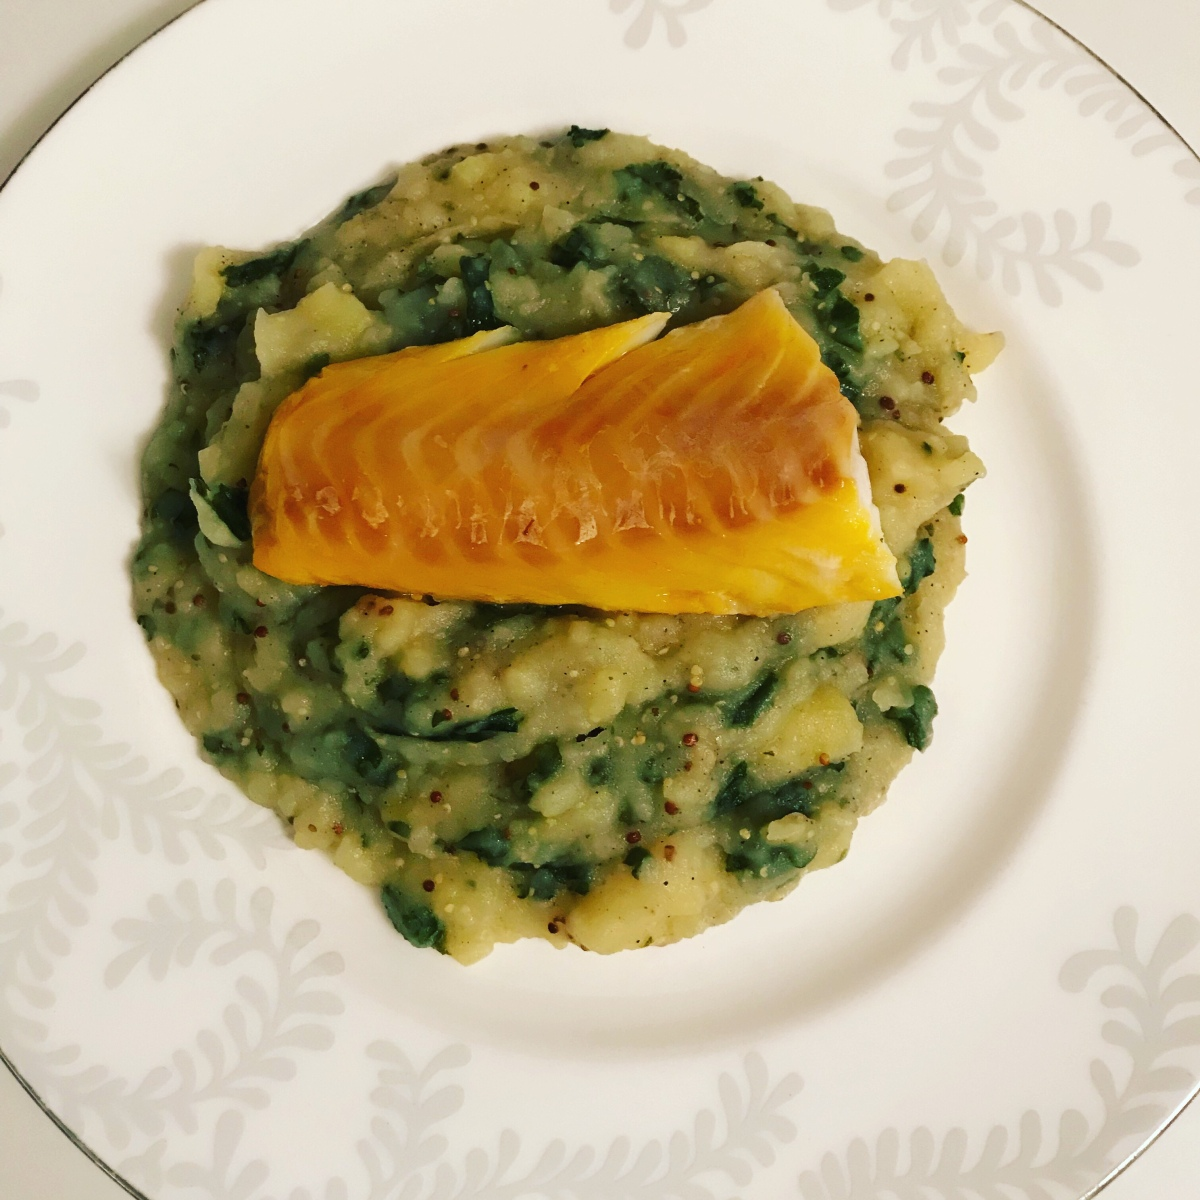 Smoked cod with mustard and kale mash